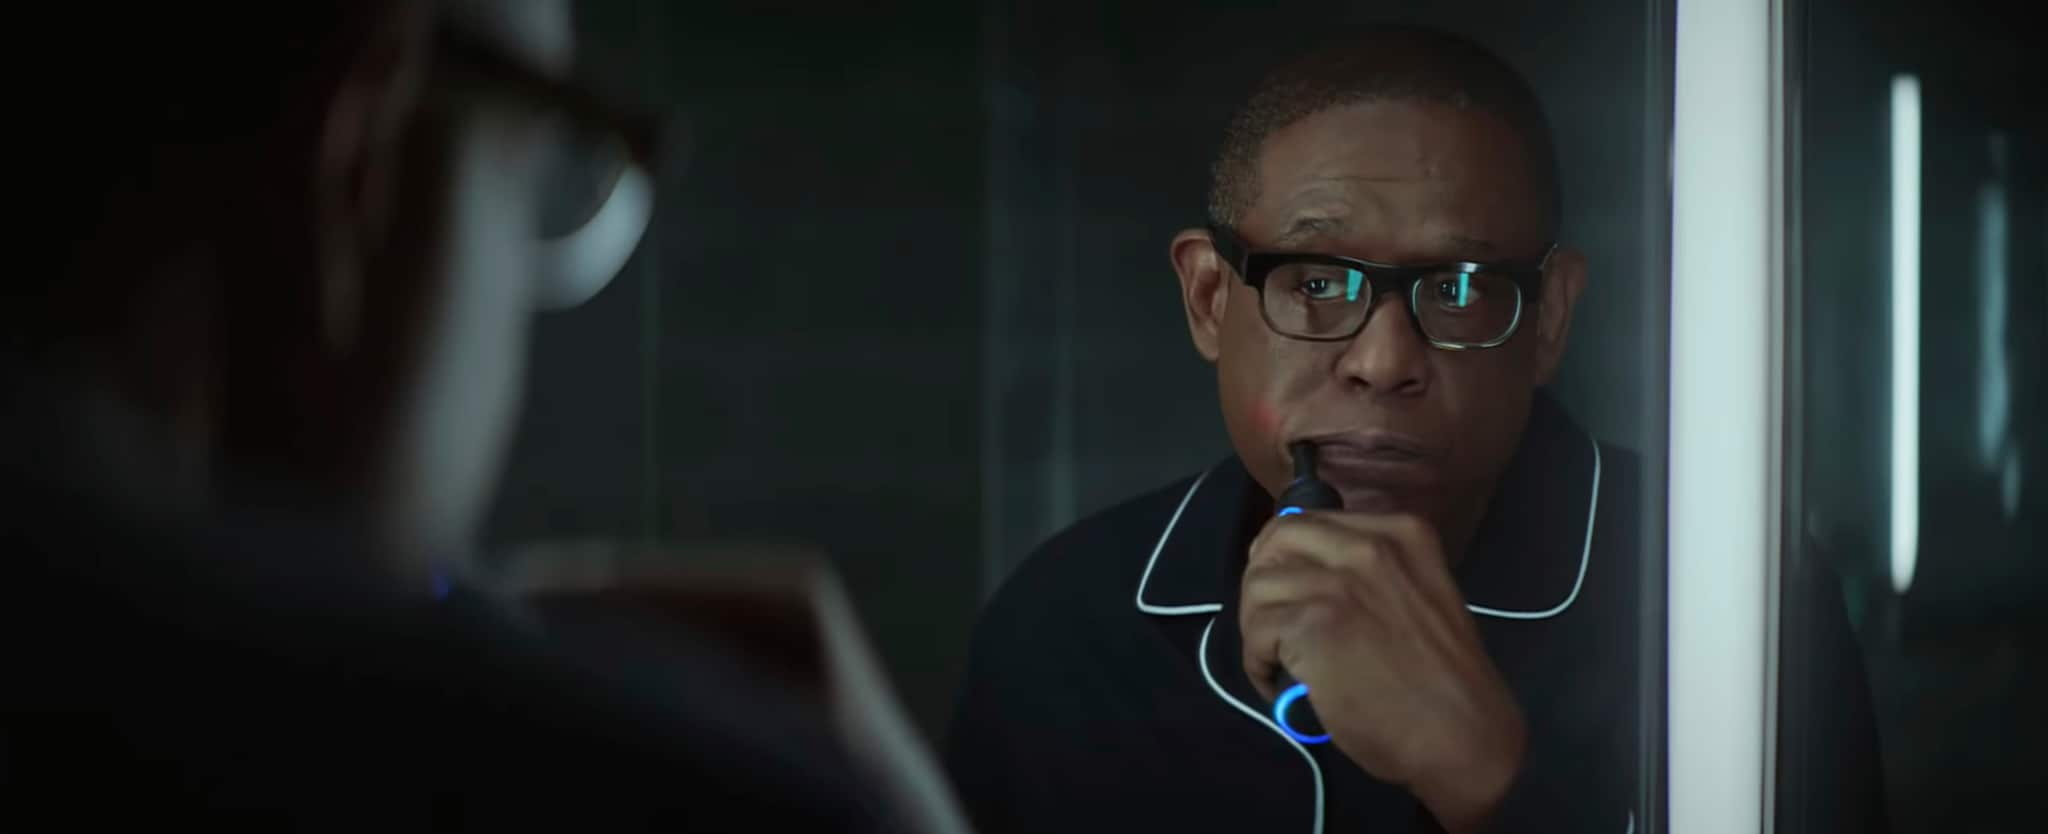 This undated image made from a video provided by Amazon shows a scene from the company's 2019 Super Bowl NFL football spot featuring Forest Whitaker. Amazon pokes fun at itself as celebrities from Harrison Ford to astronaut twins Mark and Scott Kelly test products that didn't quite work out, including an electric toothbrush and a dog collar with Amazon's Alexa digital assistant. (Amazon via AP)